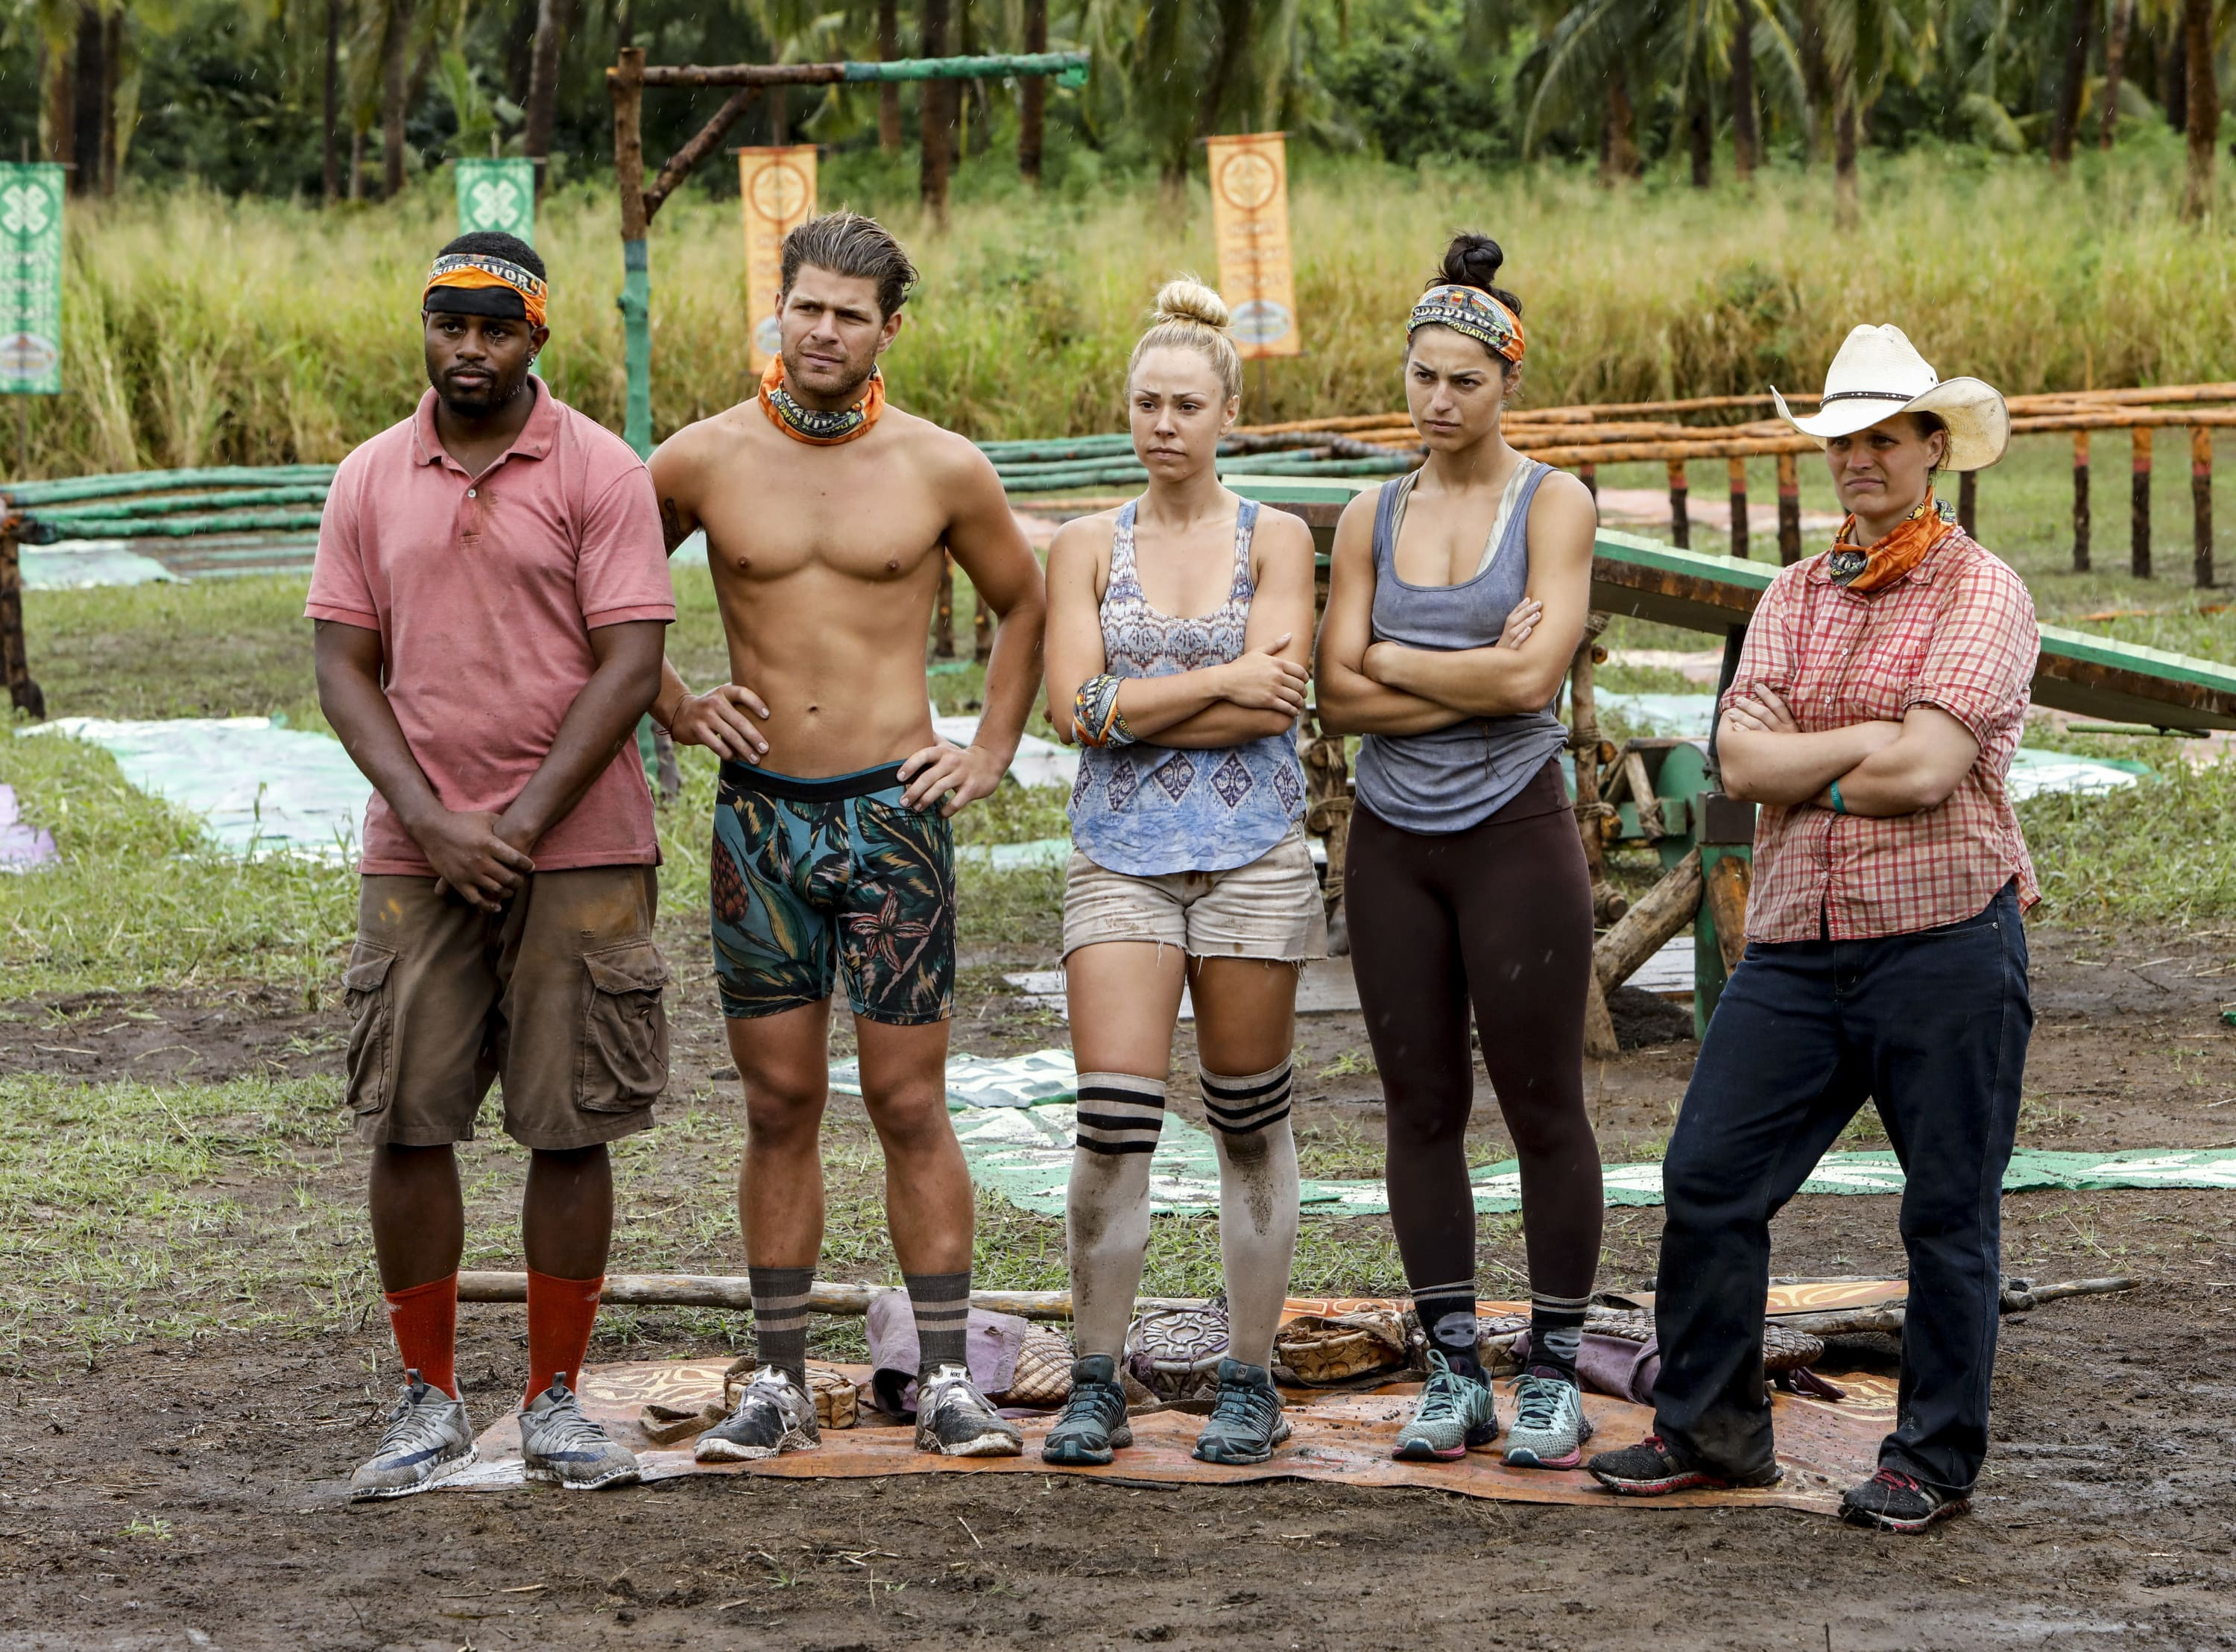 Natalia Azoqa and other castaways on Survivor: David vs. Goliath